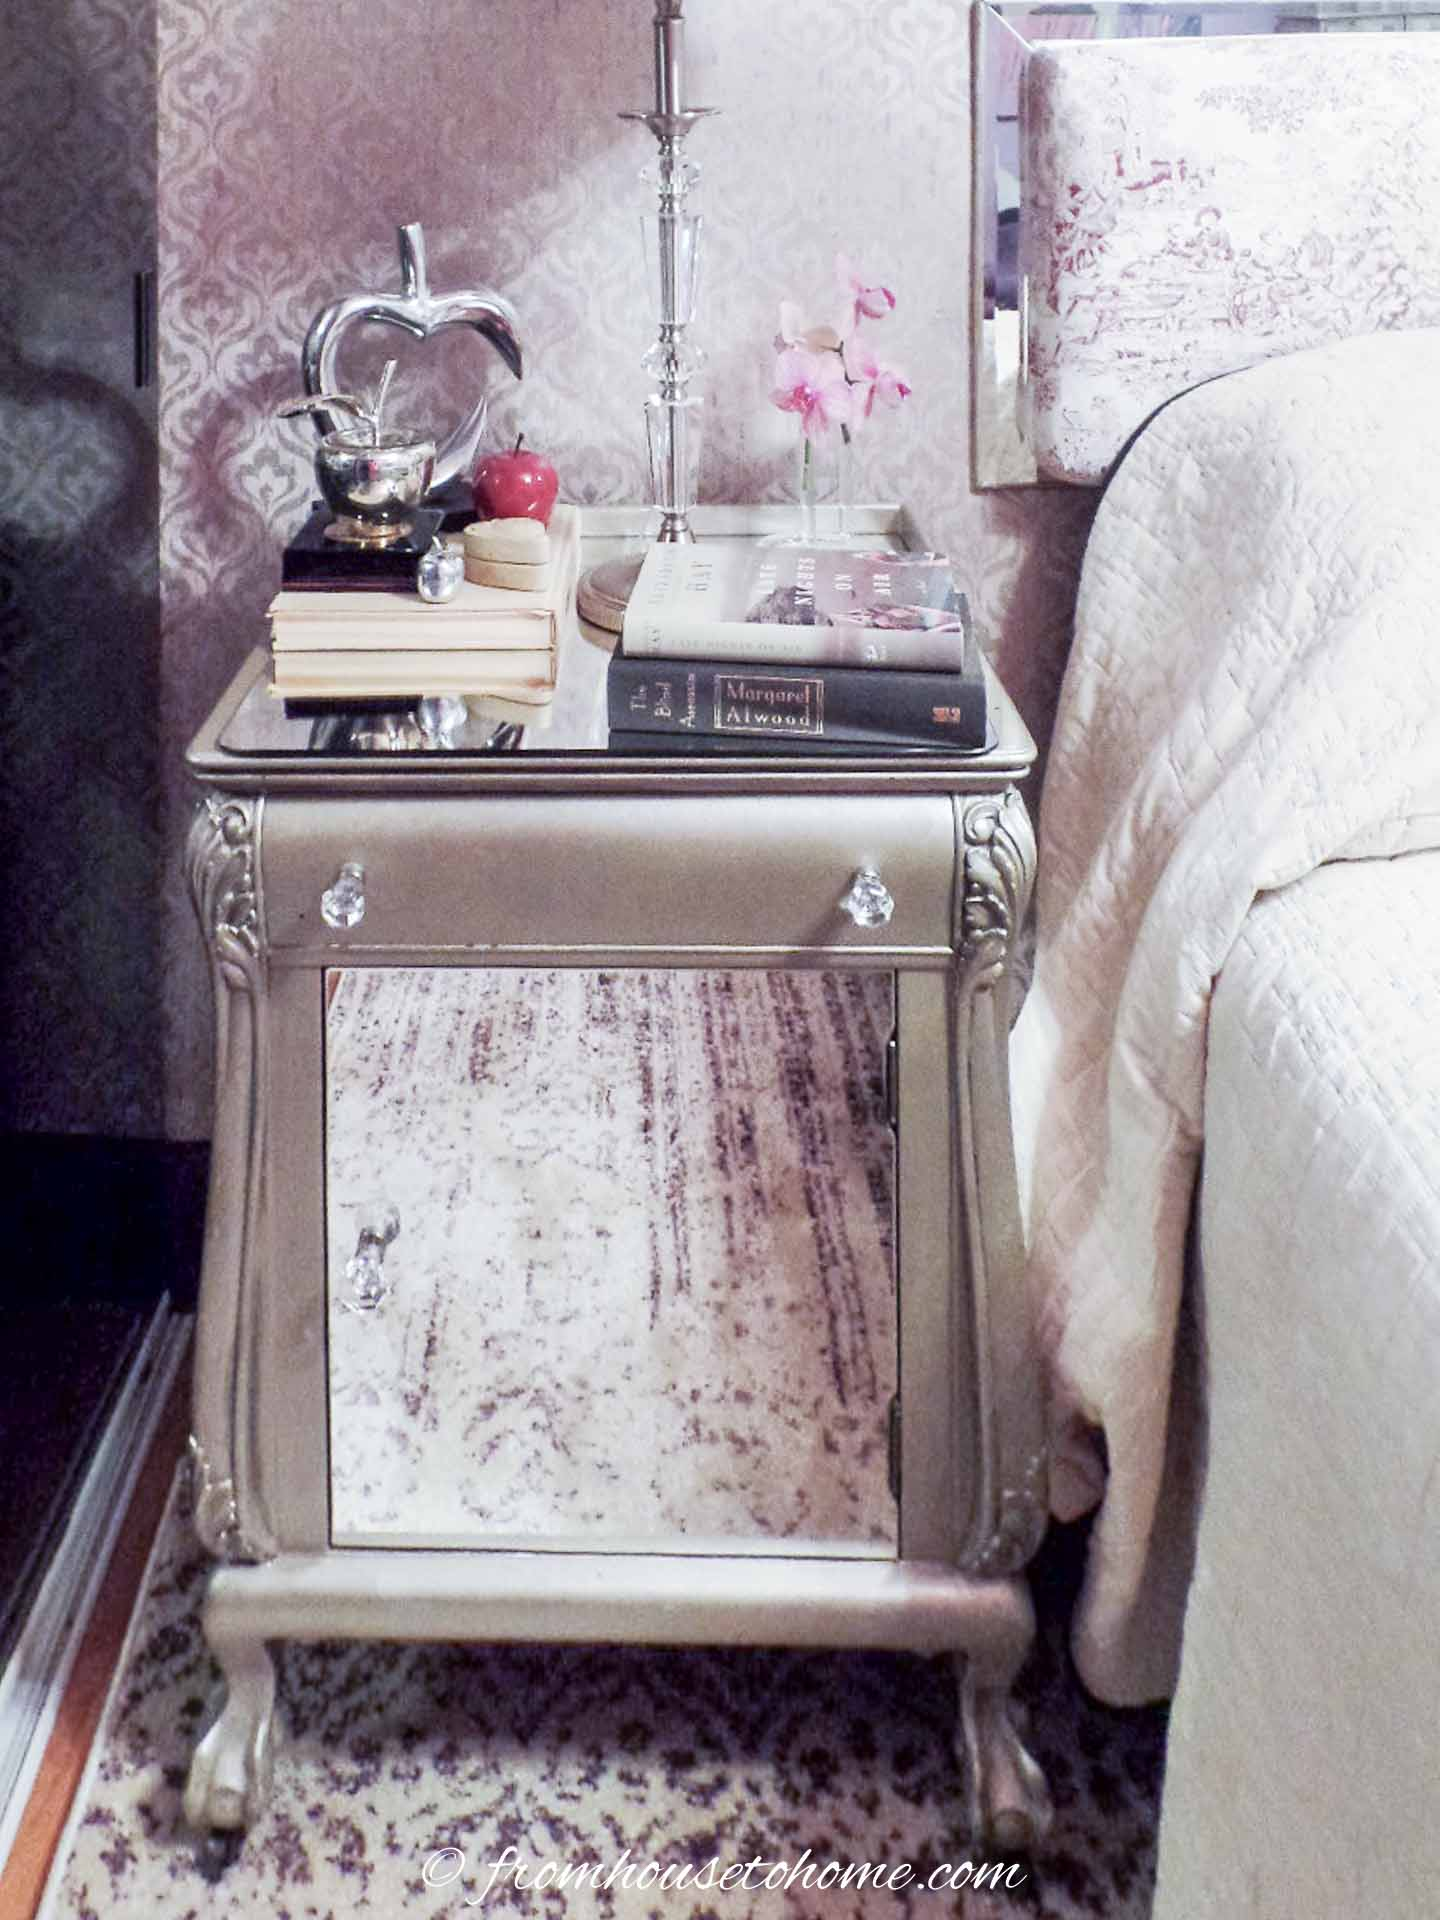 The finished DIY mirrored nightstand beside the bed